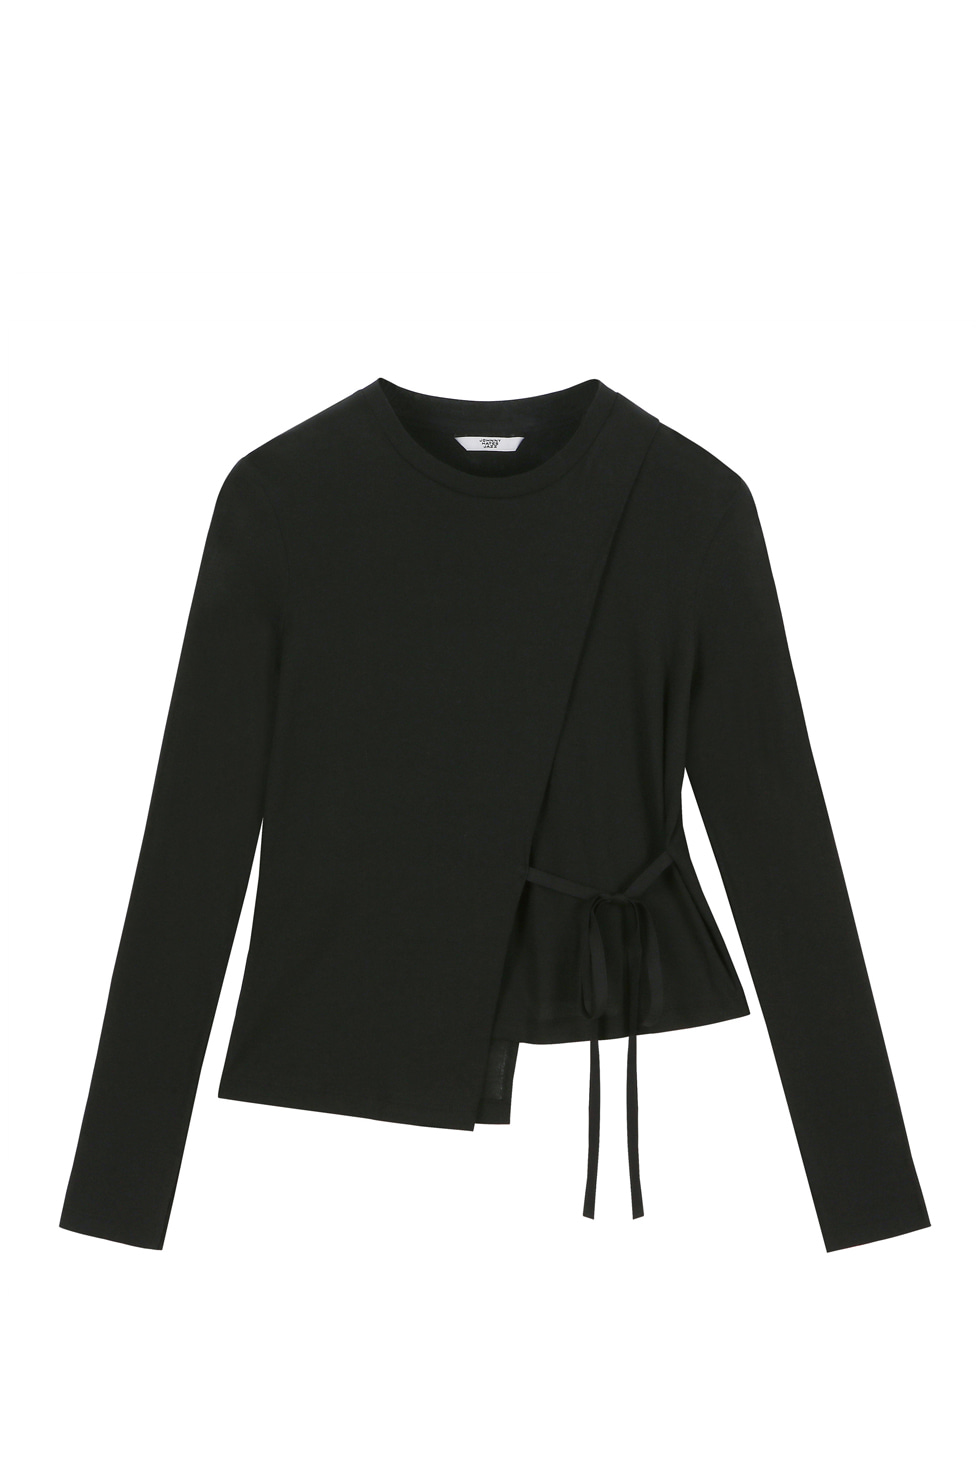 WRAP JERSEY LONG SLEEVES - BLACK